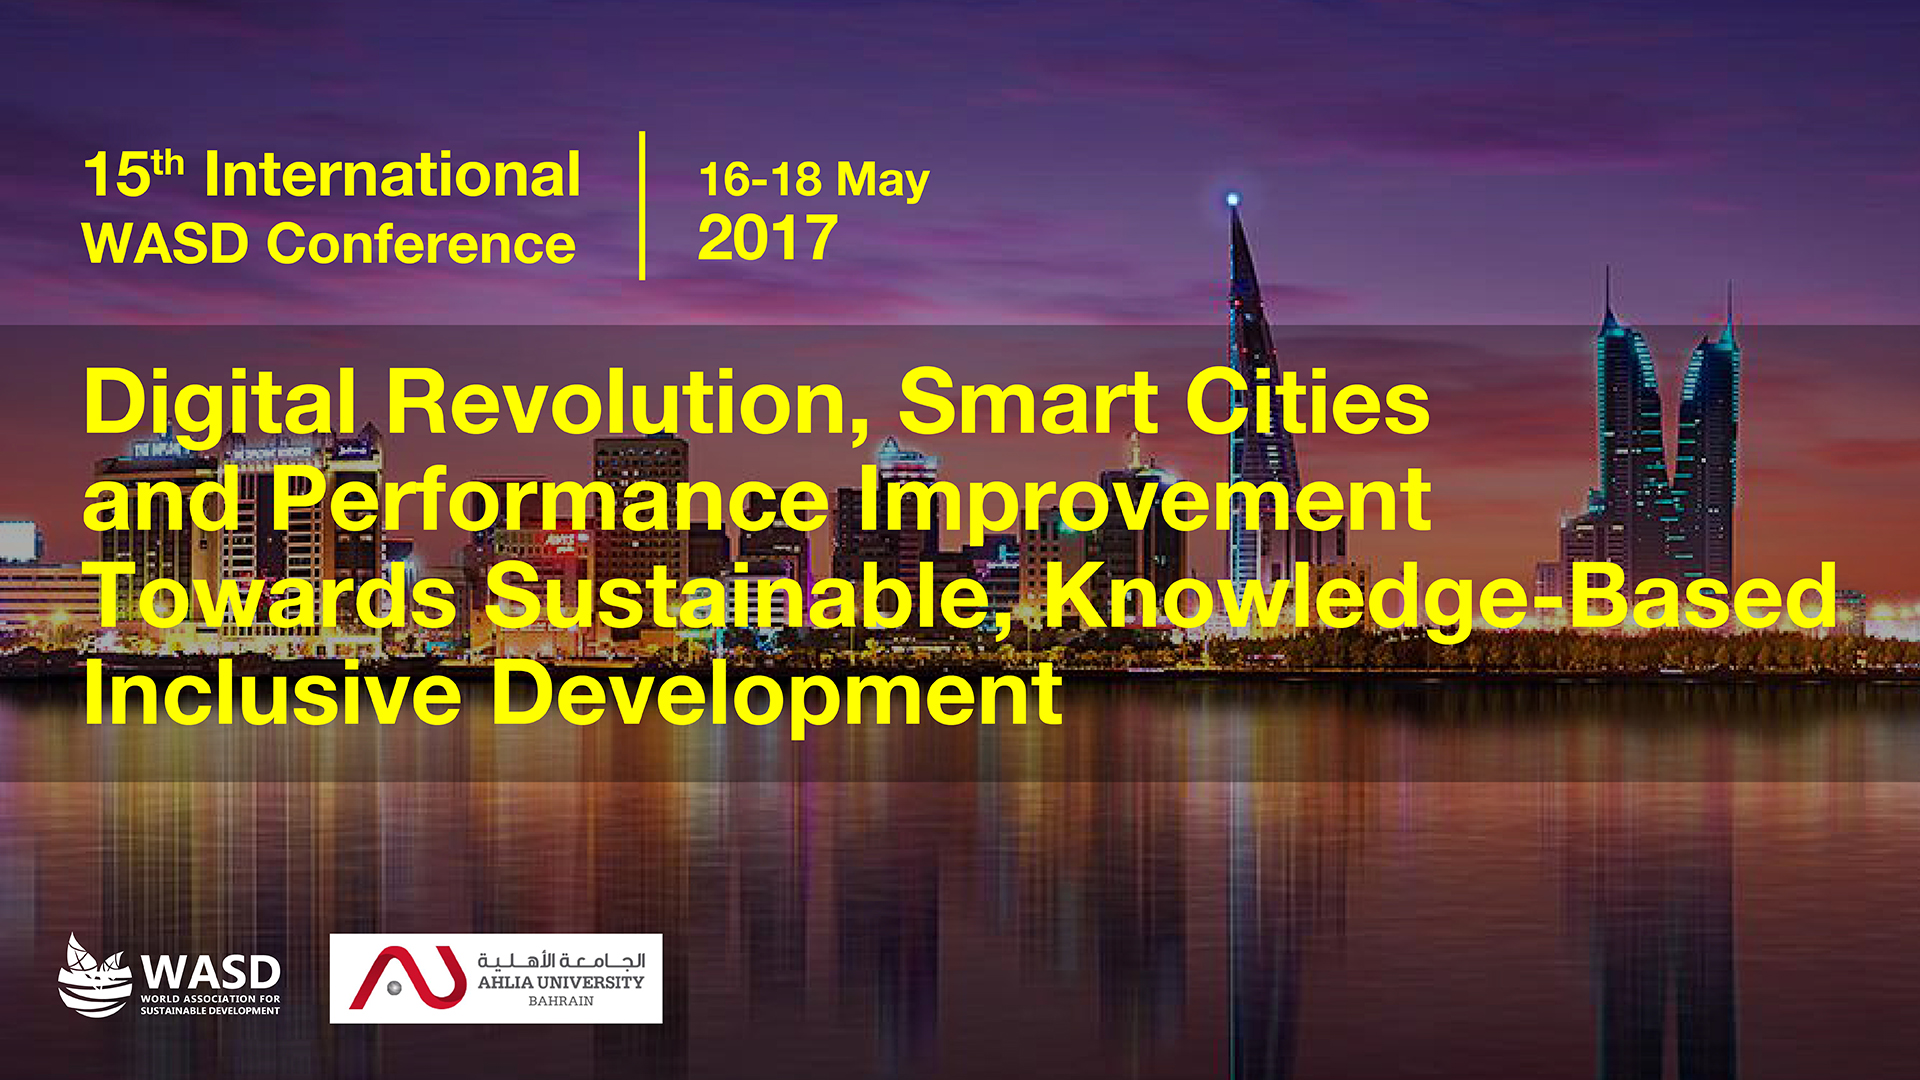 15th Sustainability Conference, Manama, Bahrain 2017<div style='clear:both;width:100%;height:0px;'></div><span class='cat'>Sustainability Conferences, MENA</span>